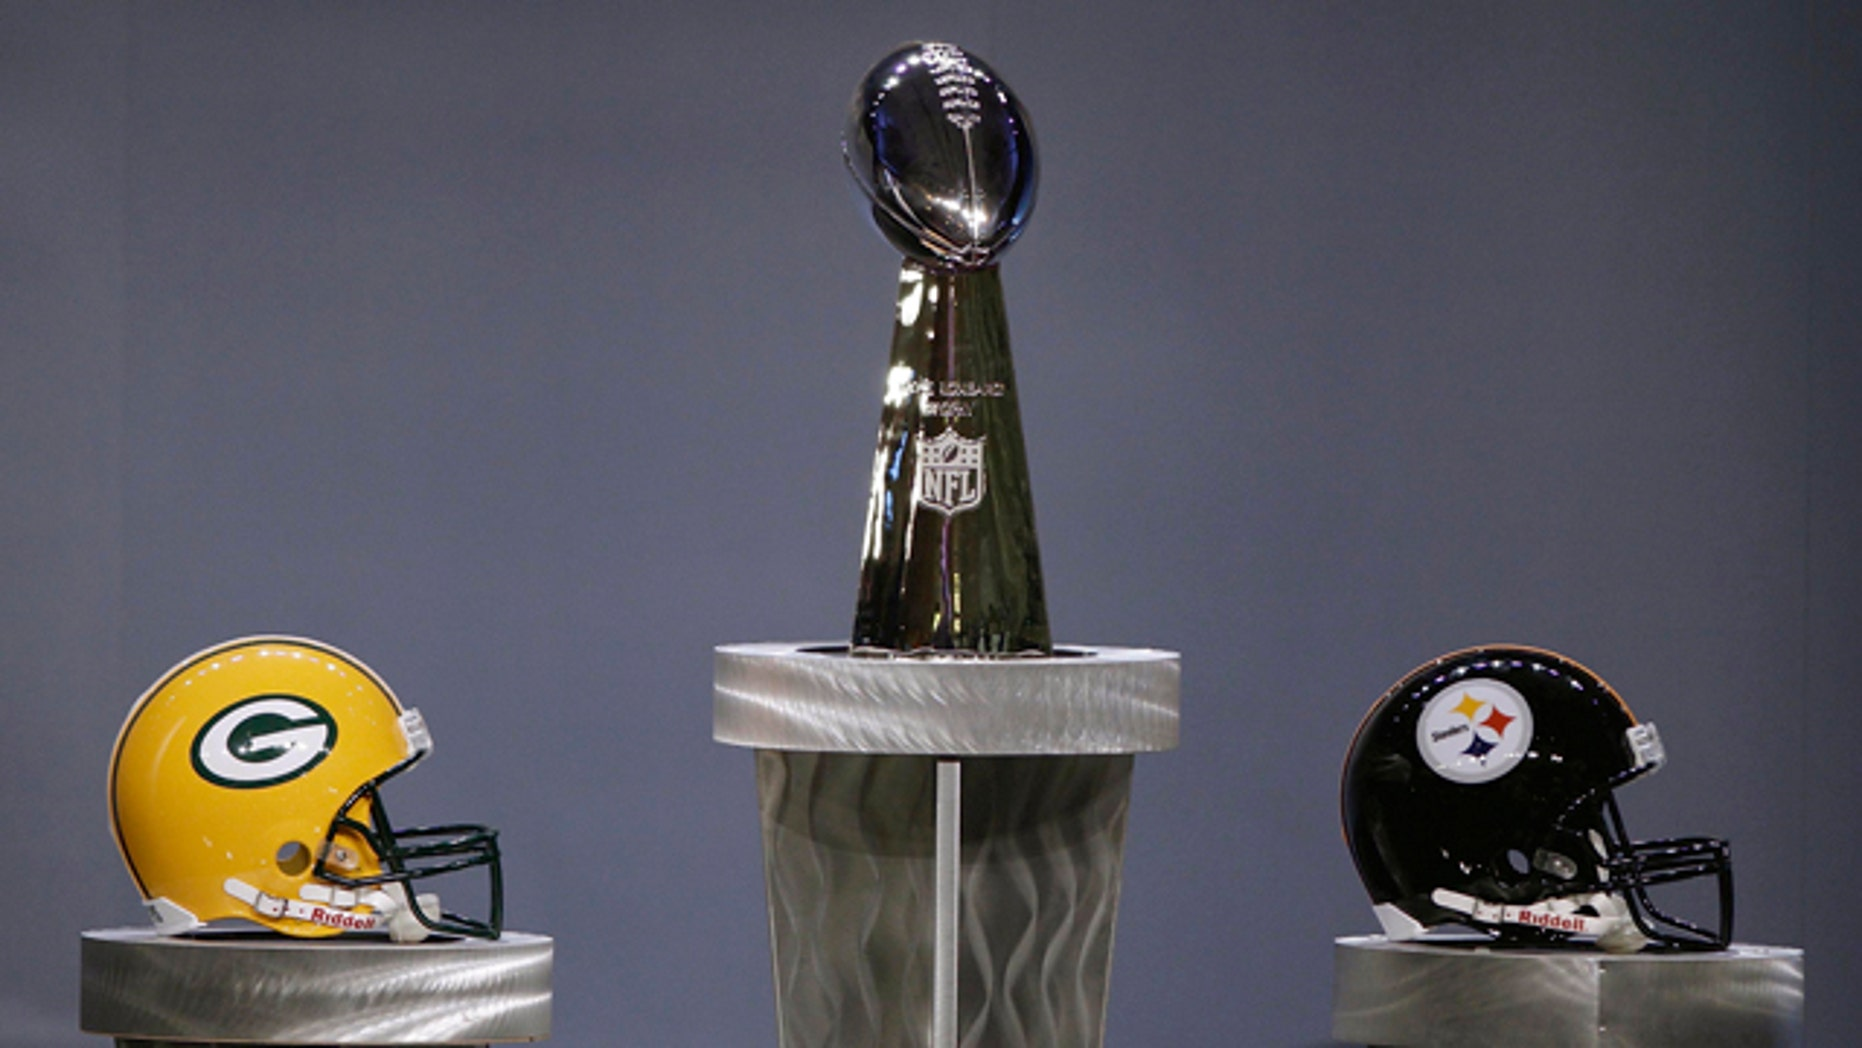 Feb. 4: The Vince Lombardi Trophy is displayed with the team helmets before a news conference at the Super Bowl XLV Media Center in Dallas.